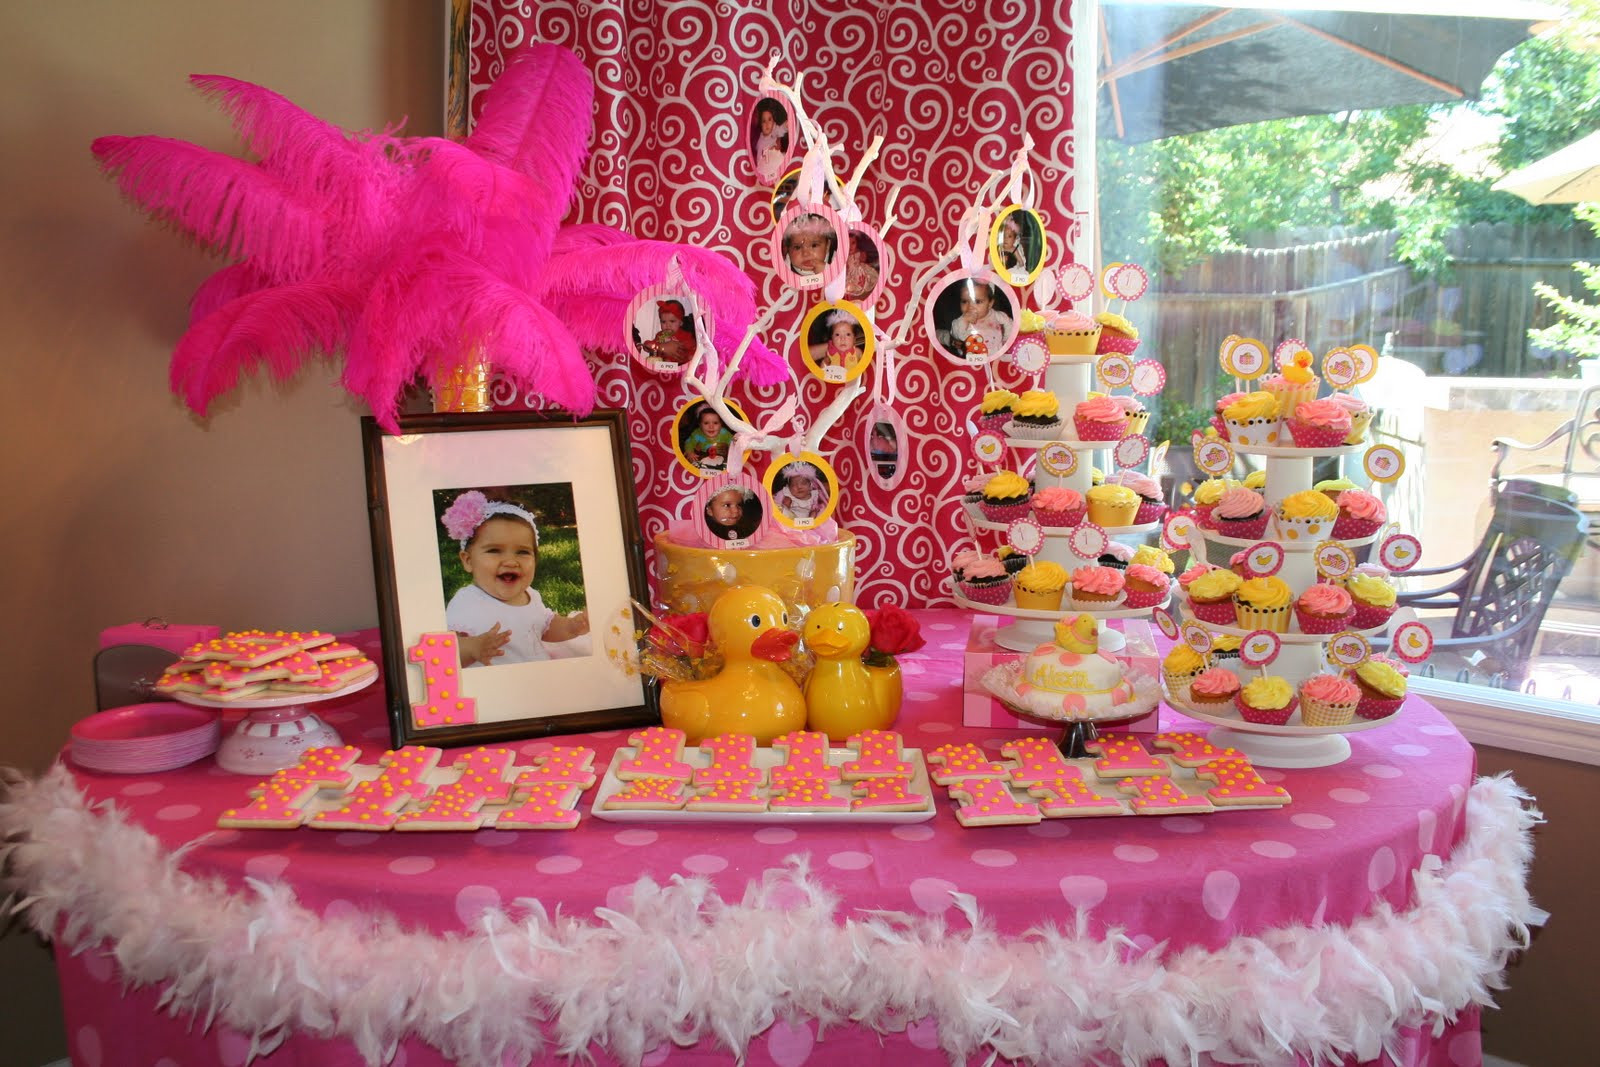 Best ideas about First Birthday Party Themes . Save or Pin 35 Cute 1st Birthday Party Ideas For Girls Now.